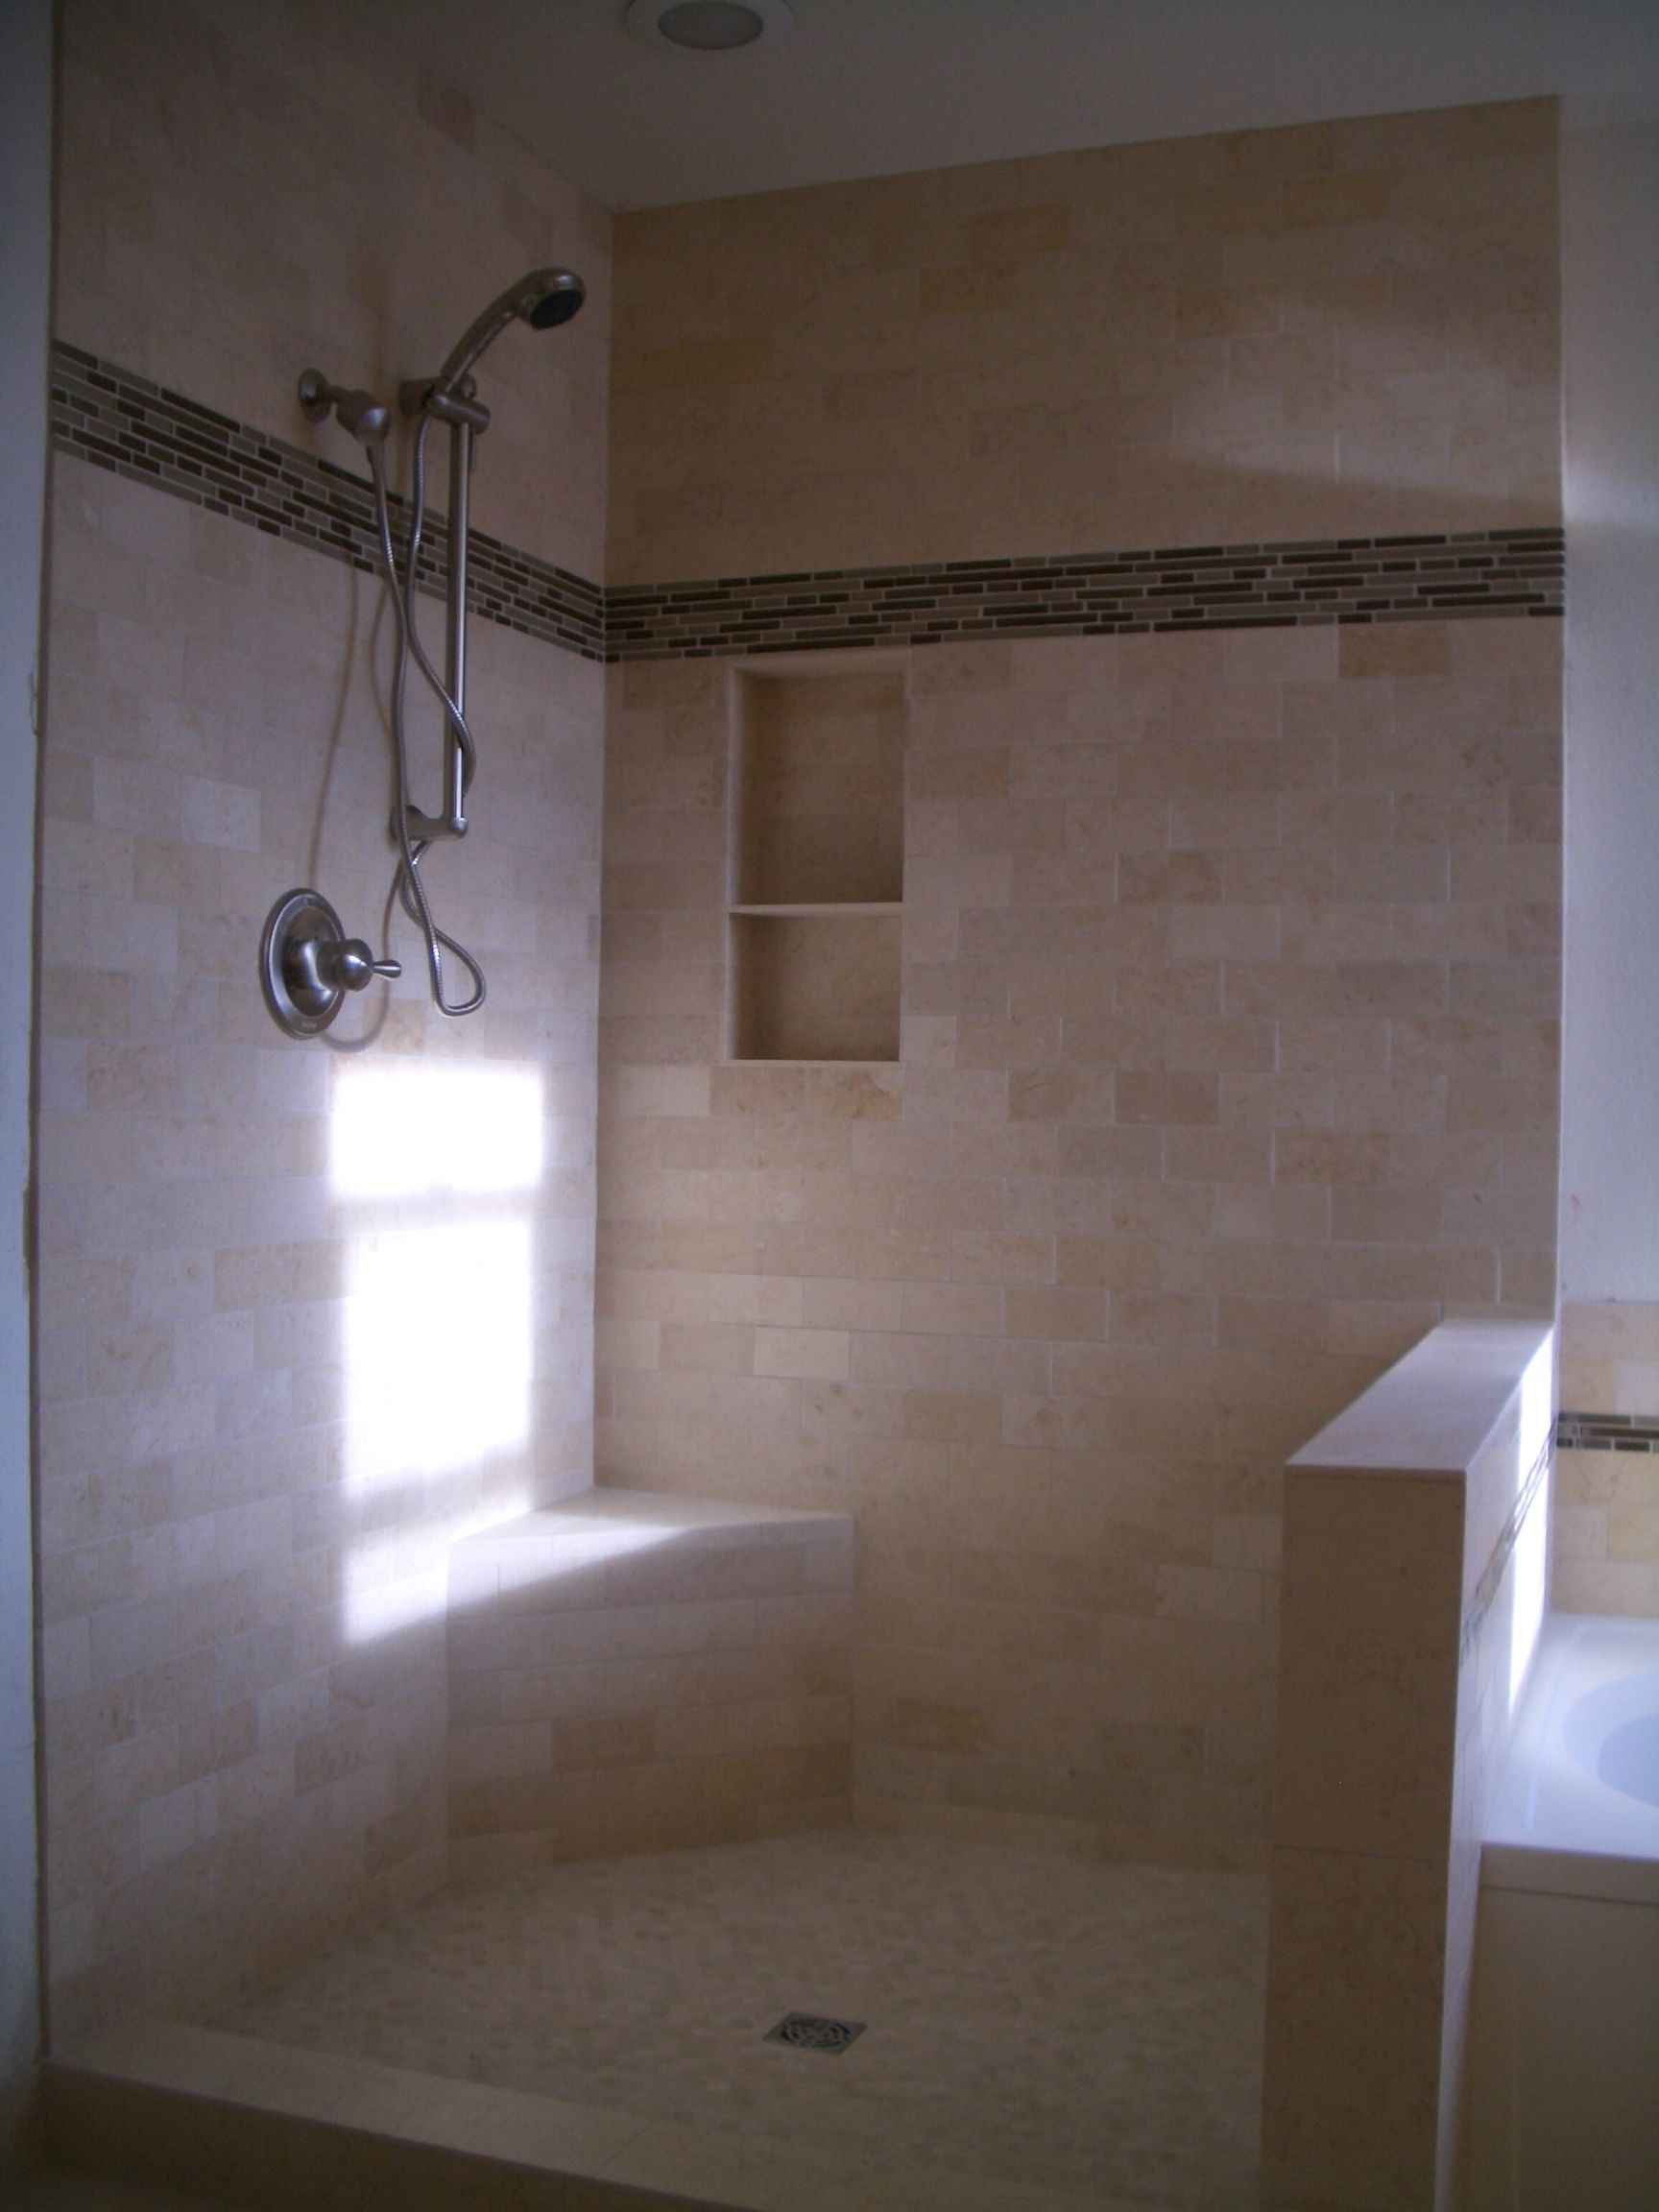 Pic On Wonderful Beige Color Glass Stainless Unique Design Rectangular Travertine Tile Be Equipped Stainless Shower Wall Glass At Bathroom With Travertine Tile